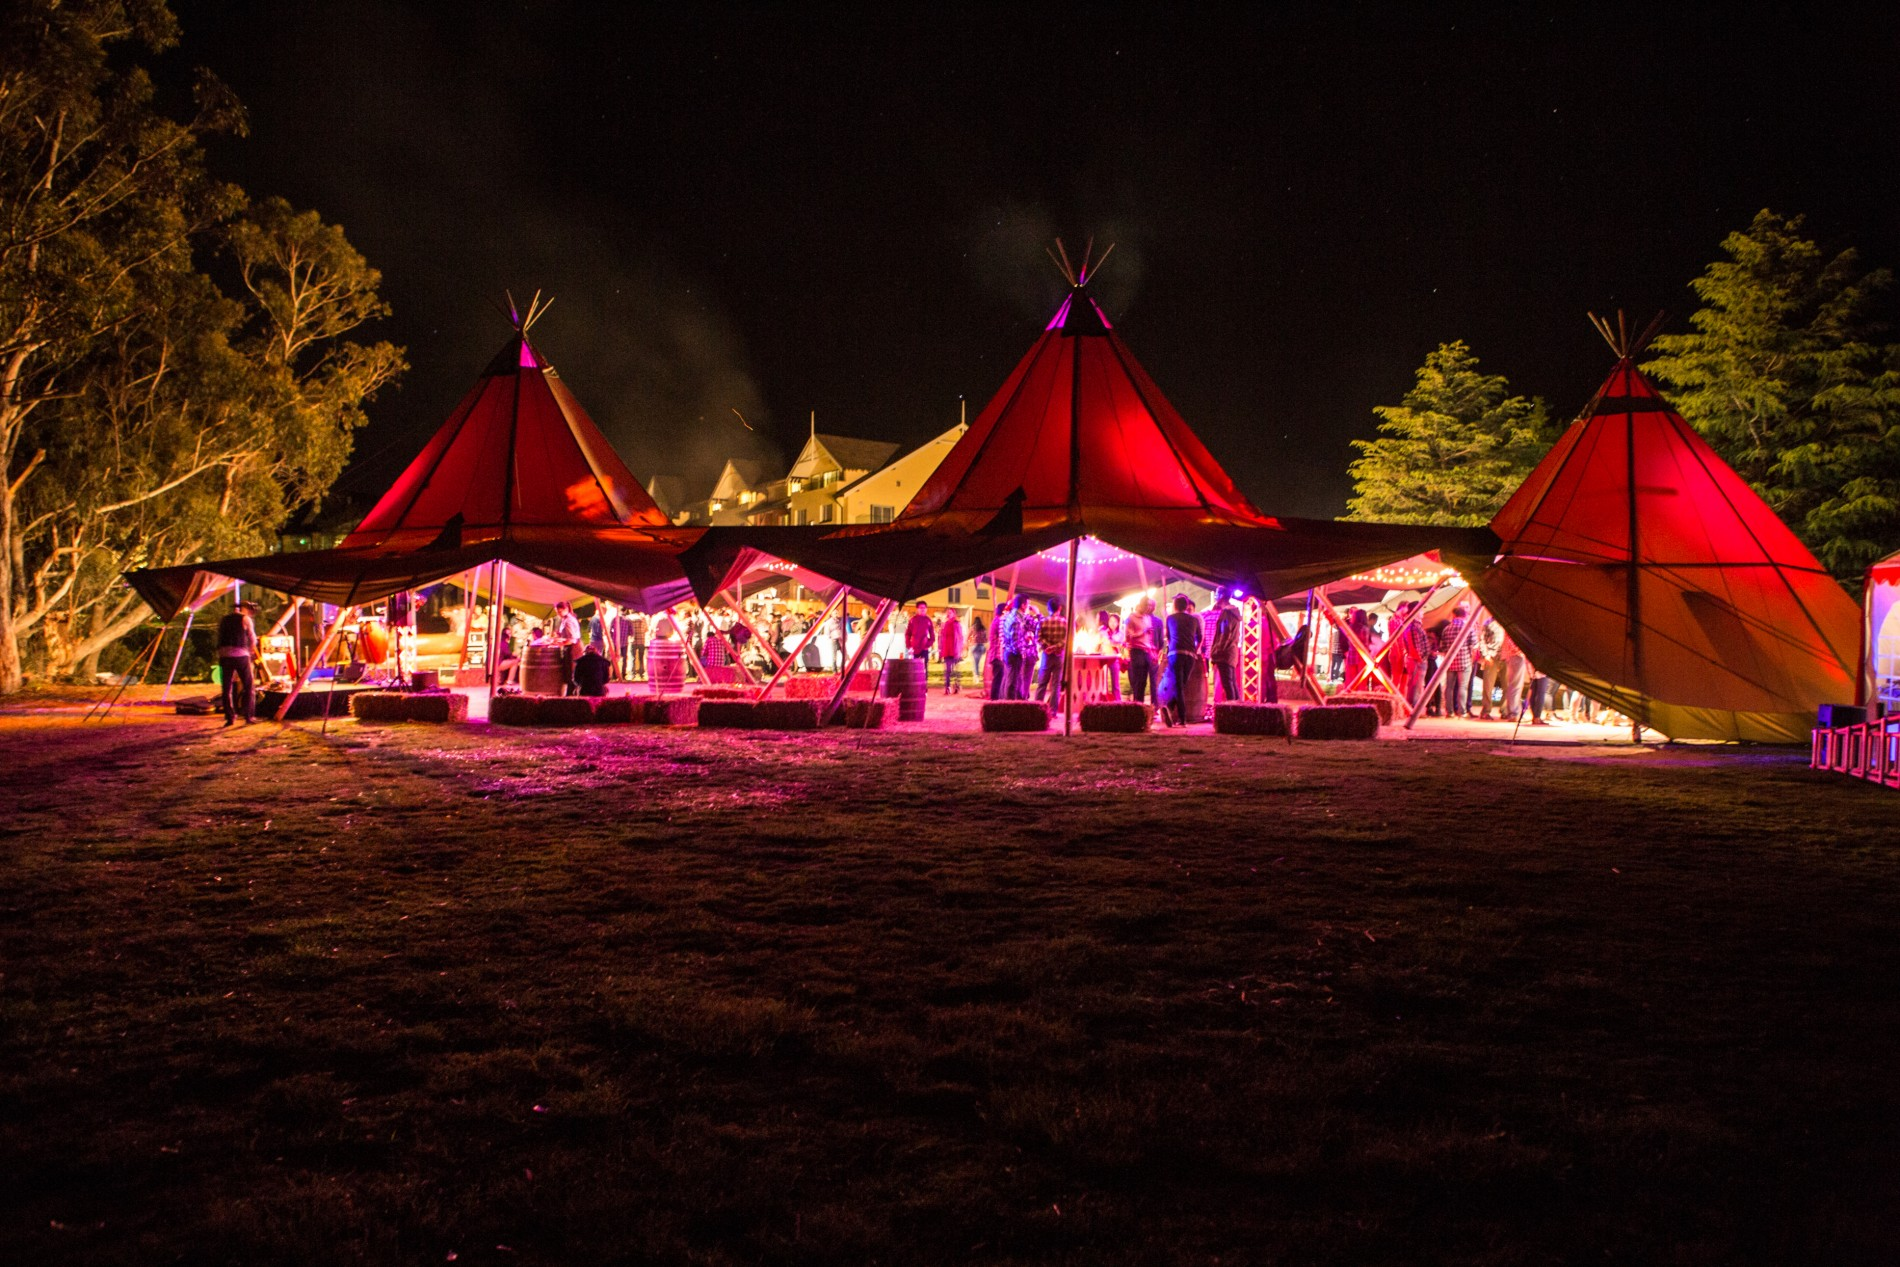 Optiver-Bonfire-October-2015-85_3872x2581_745623.jpg